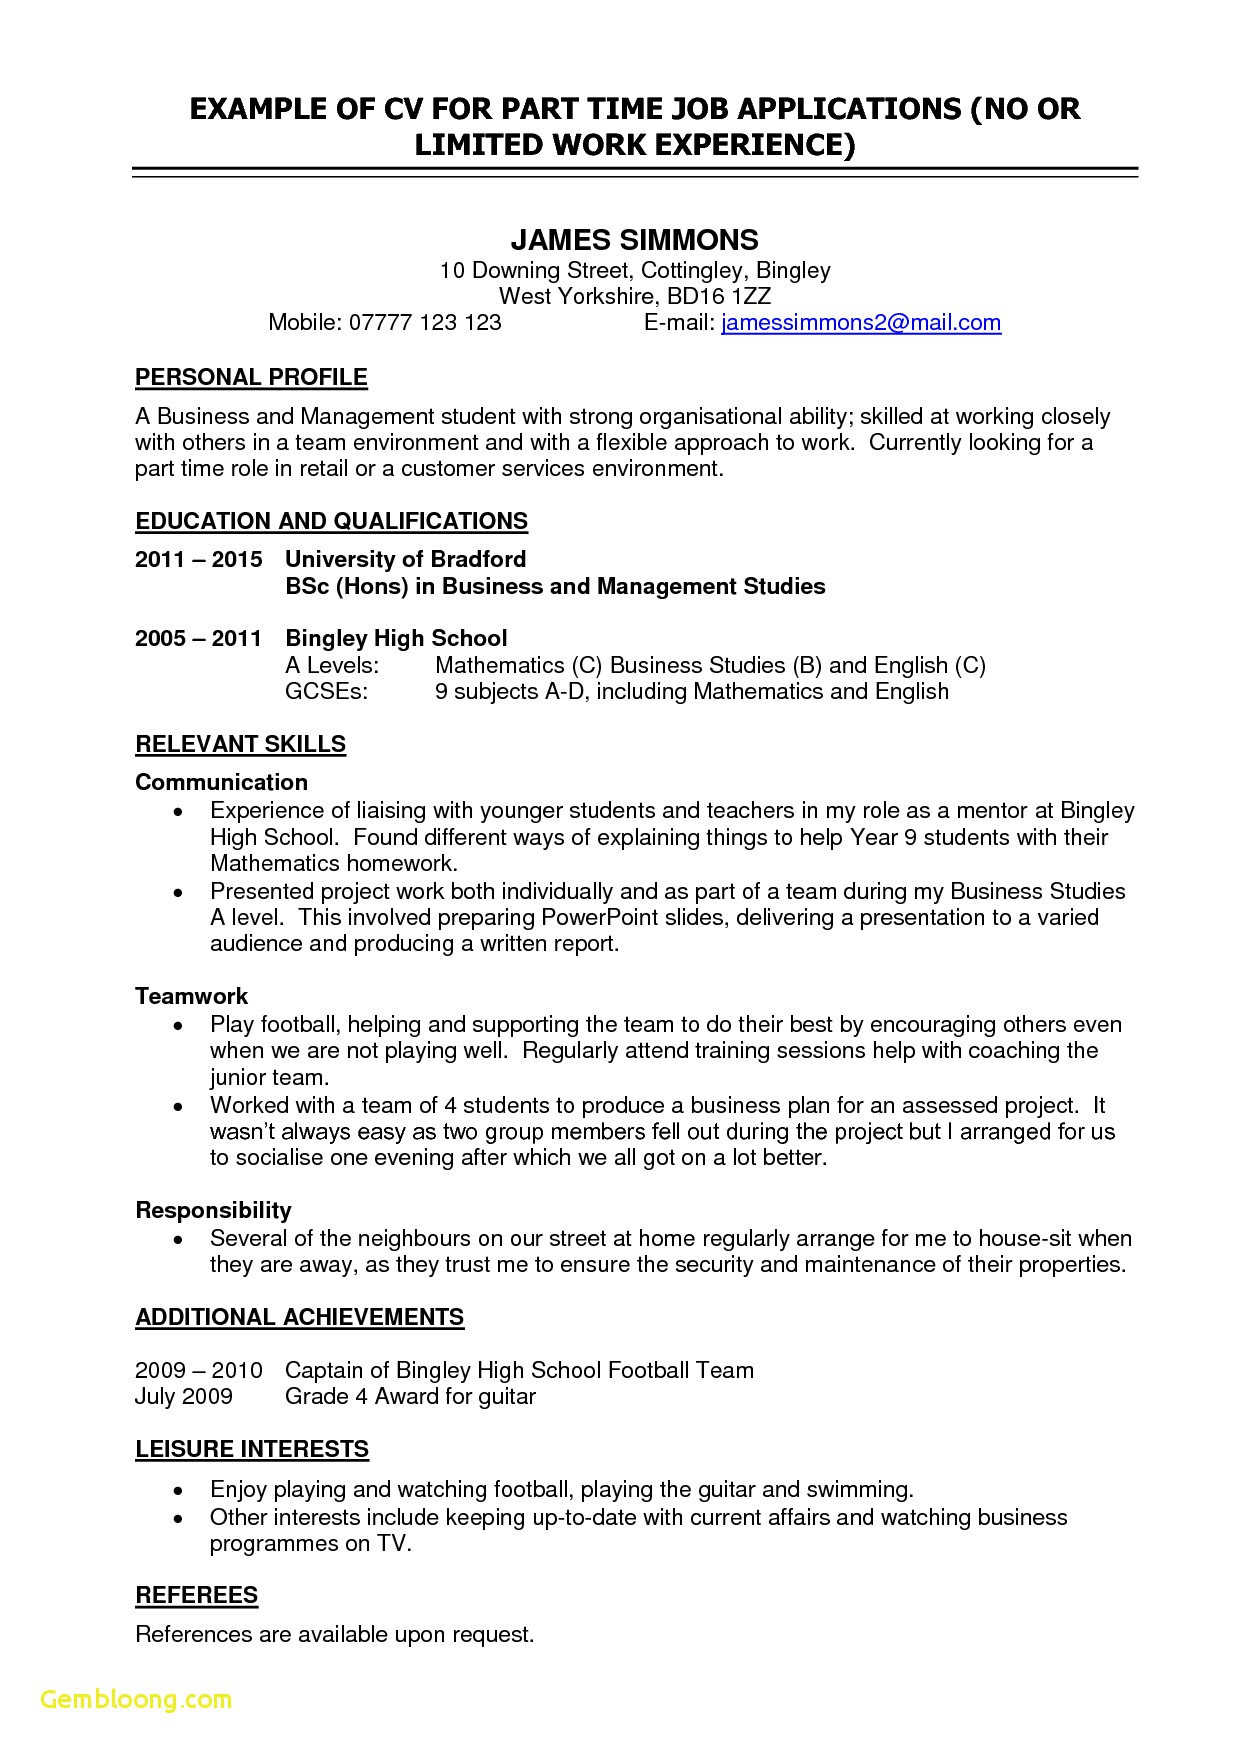 Professional Resume Outline - Resume Template for College Student Example College Resume